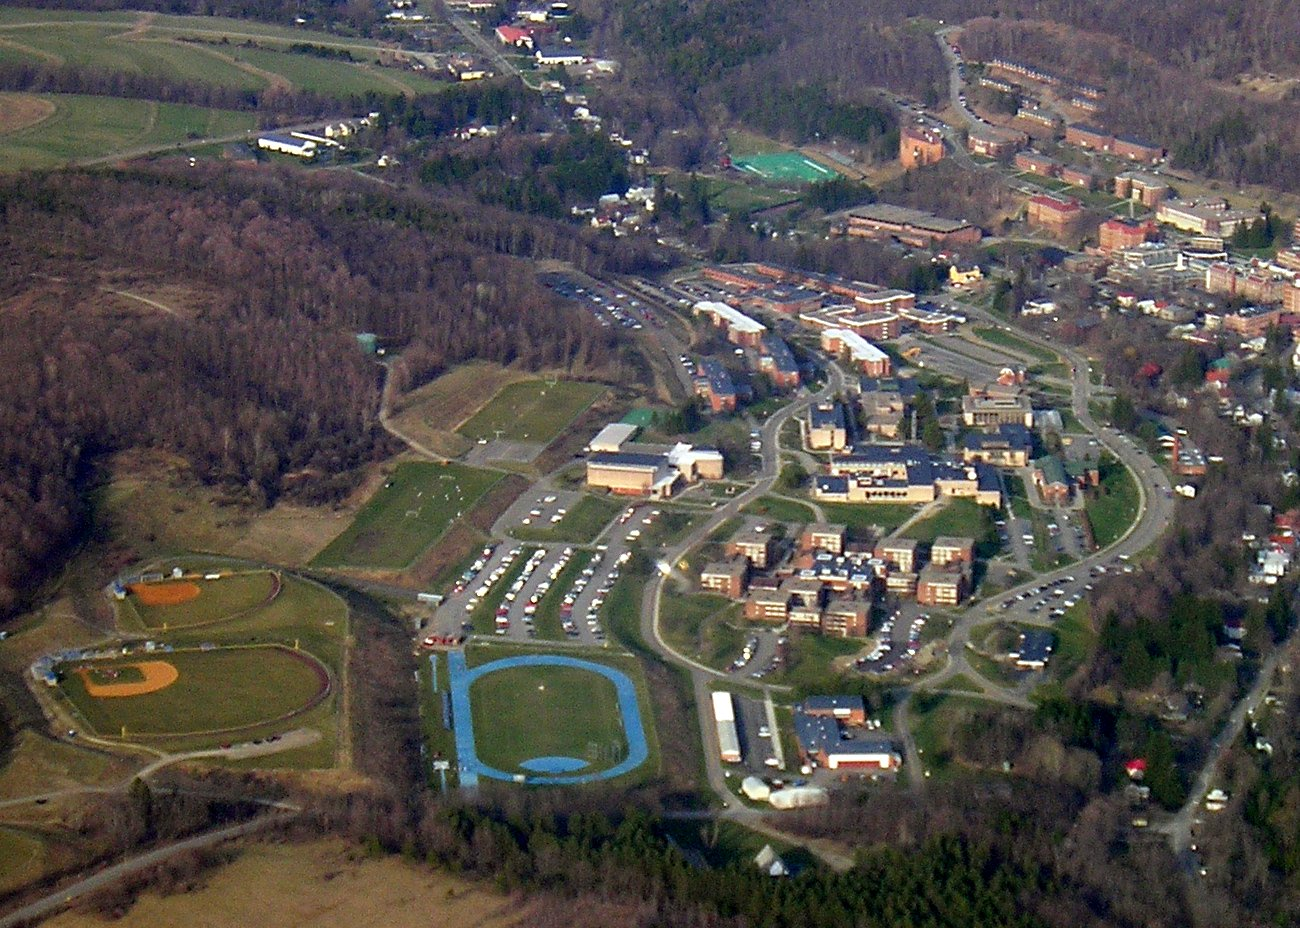 Athens New York Aerial Images